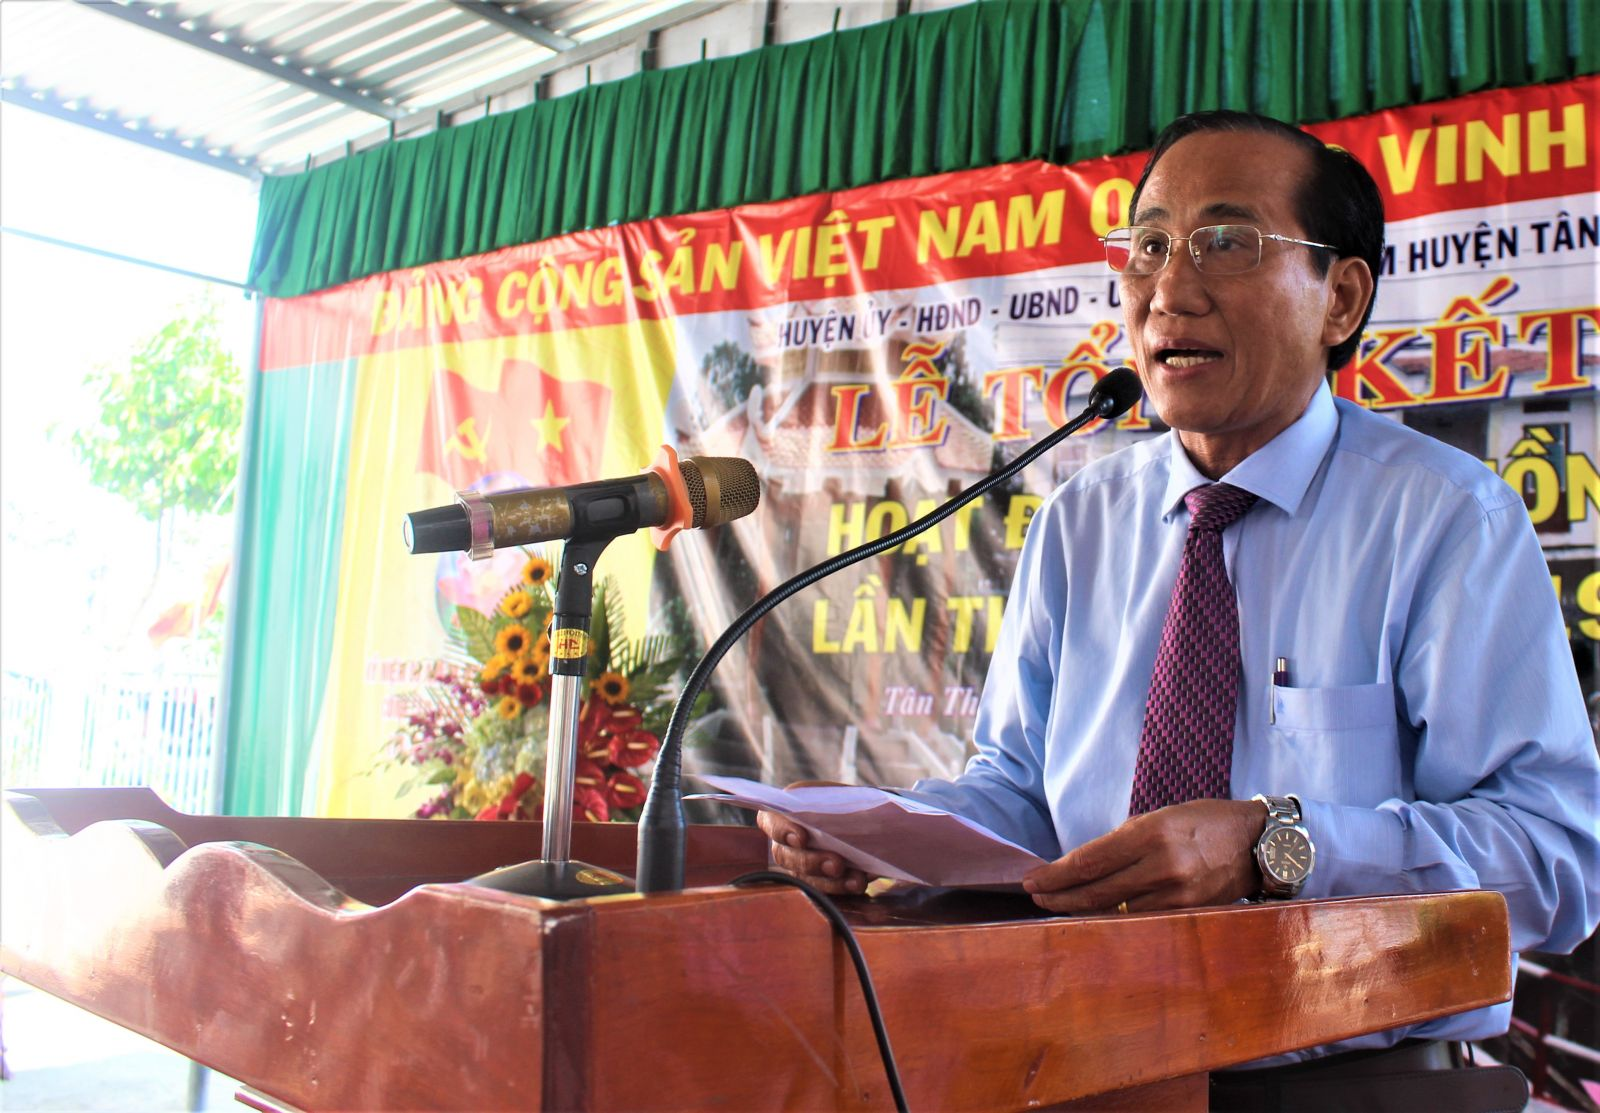 According to the Vice Chairman of Long An Provincial People's Council - Nguyen Thanh Cang, the ancestor-returning activities is a lever to help Tan Hoa commune to have conditions for development.